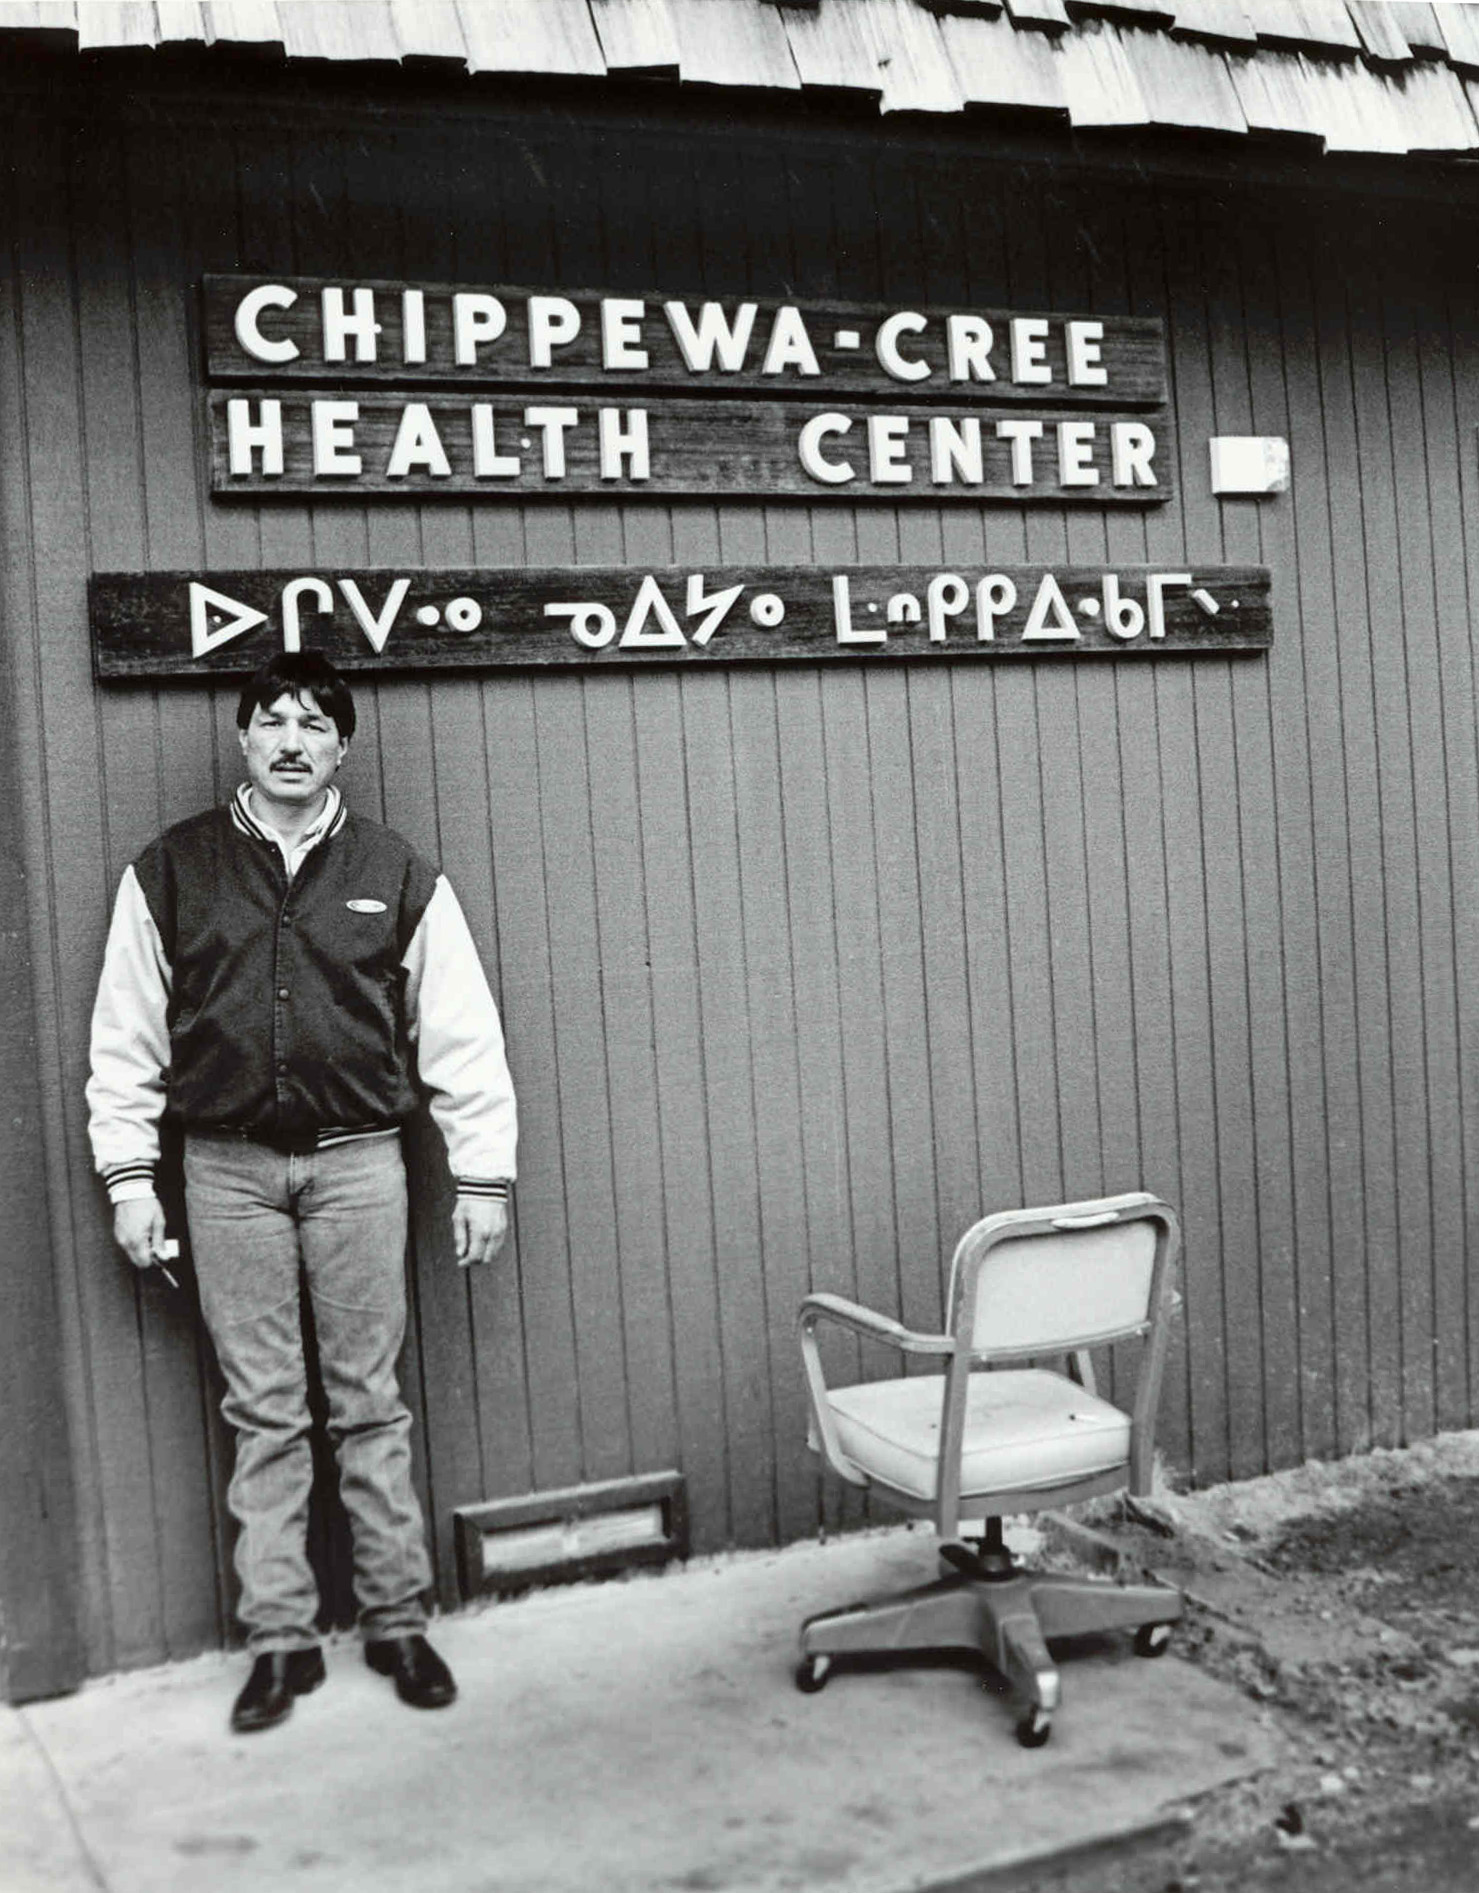 Chippewa-Cree Health Center